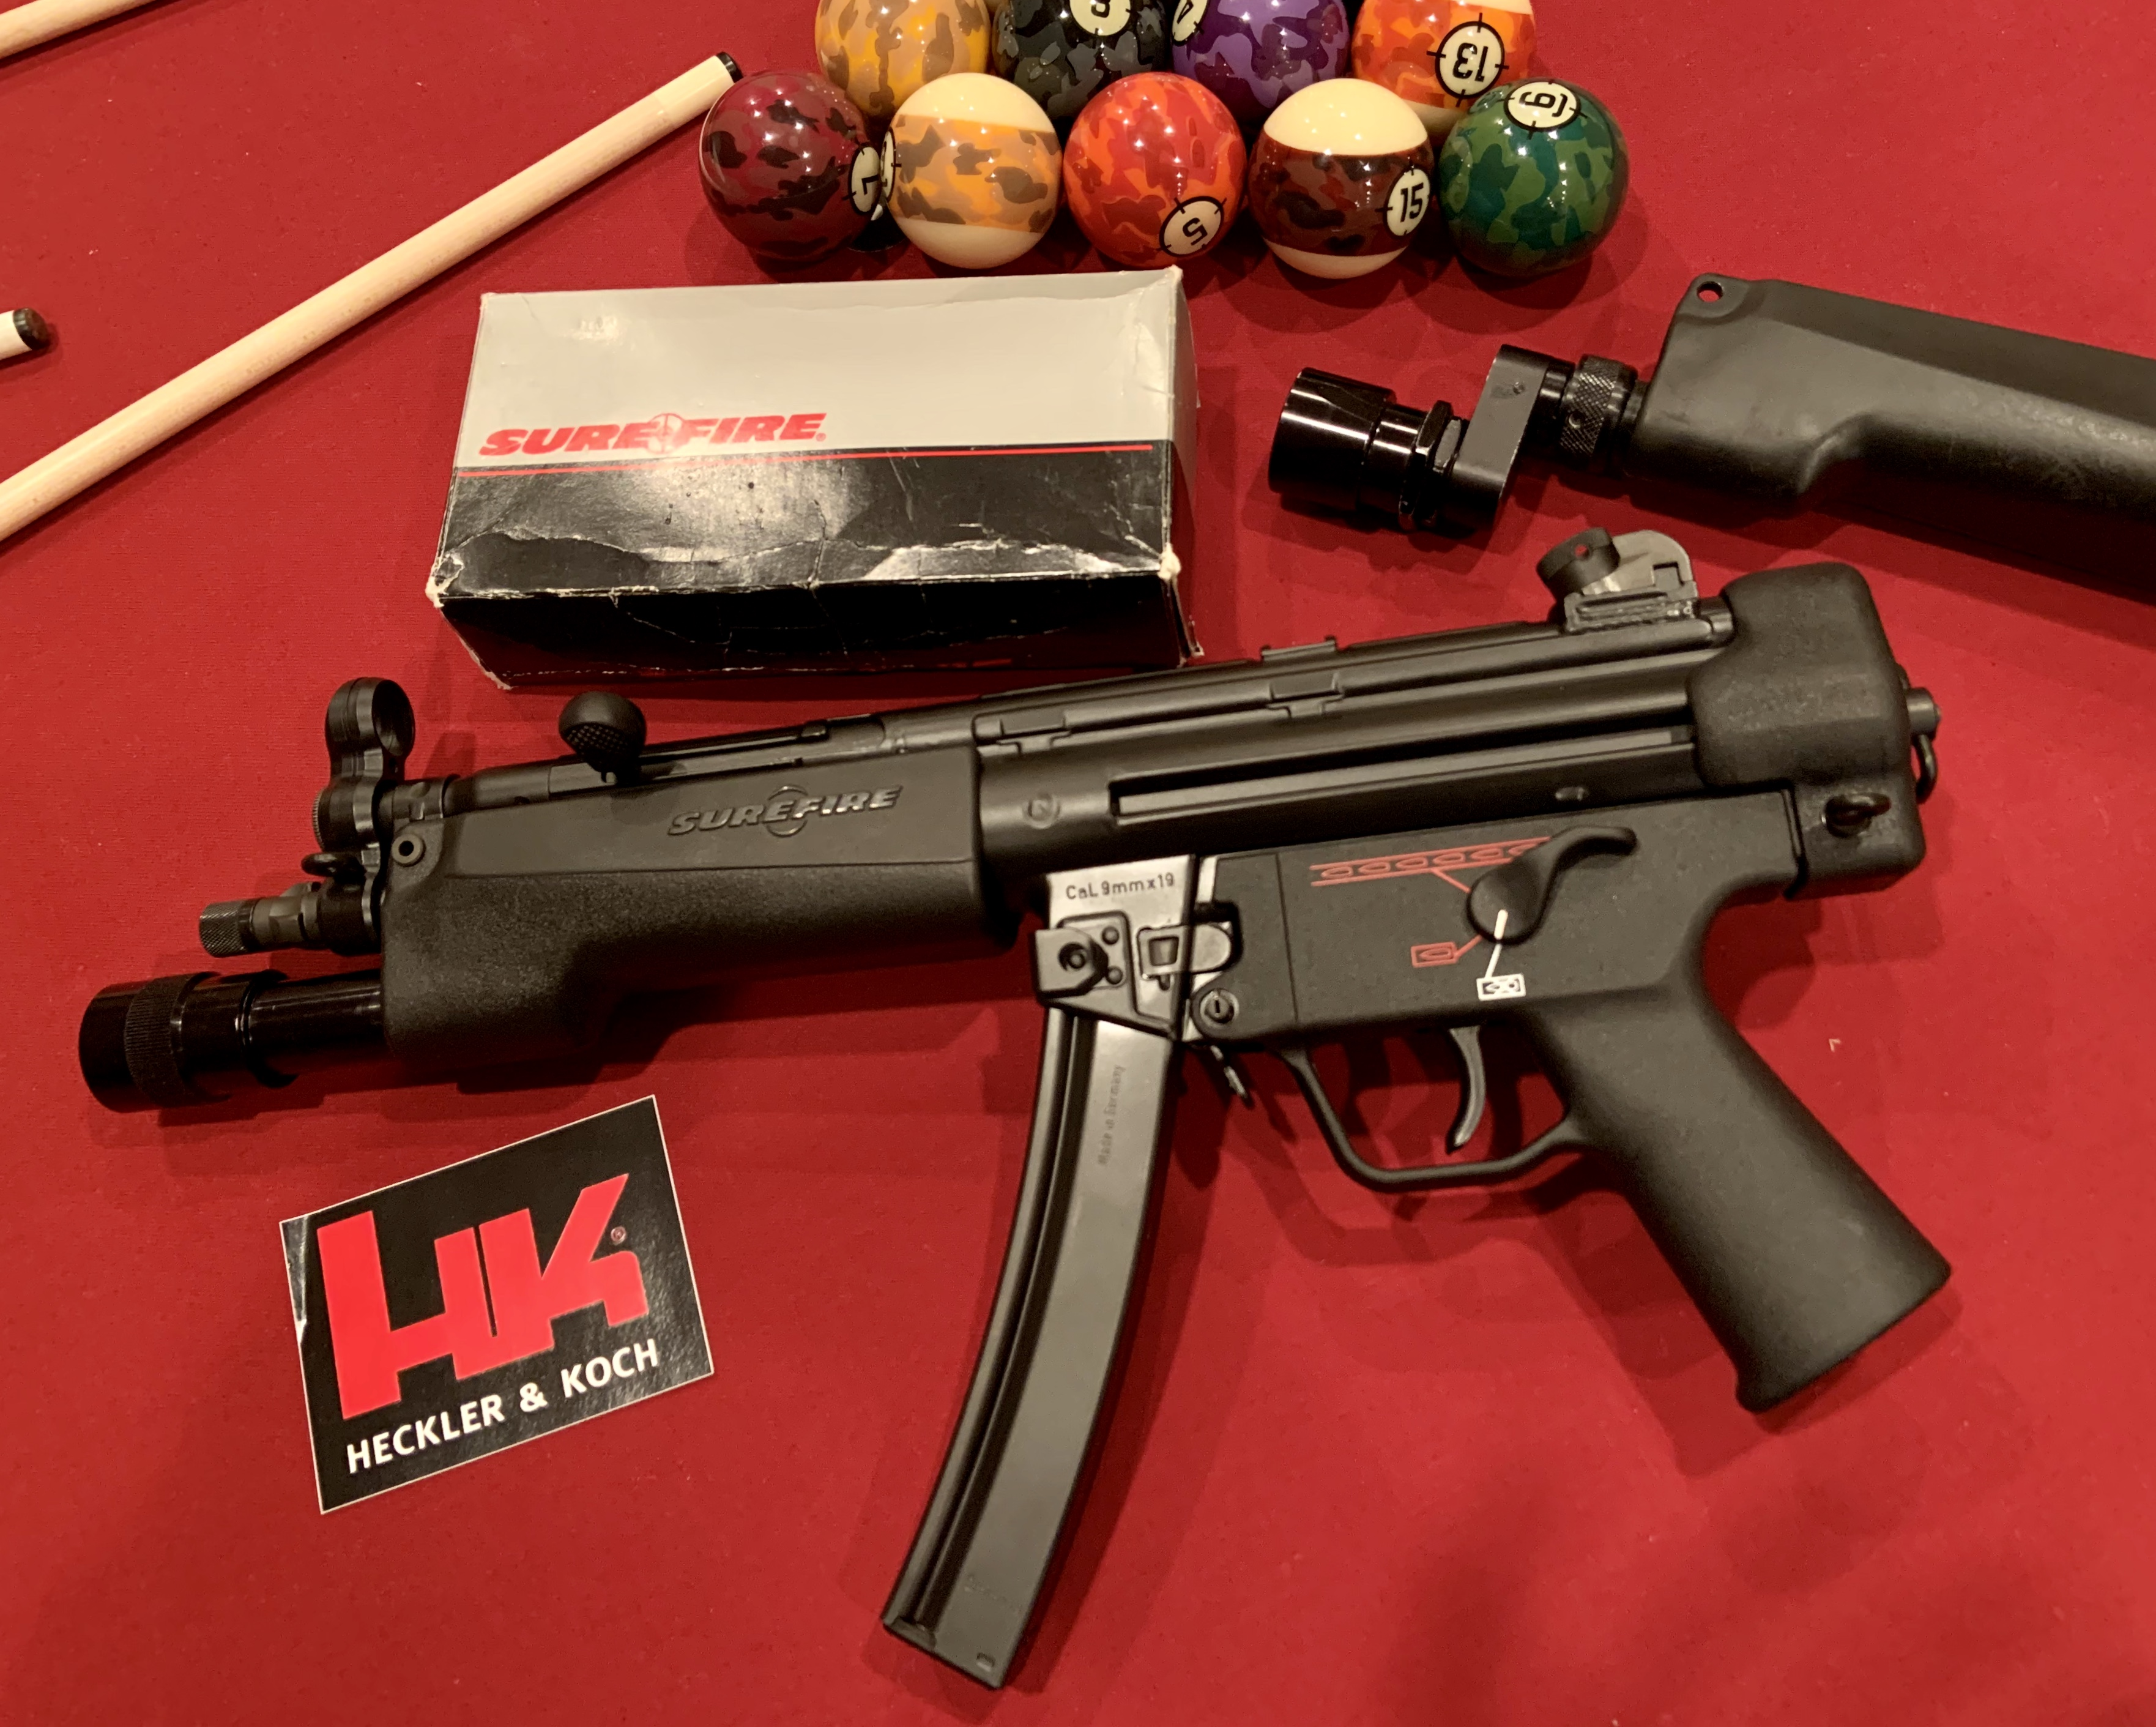 Let's See Your MP5's!-37d7e213-ef39-4806-a0d6-7936825b2ba1.jpeg